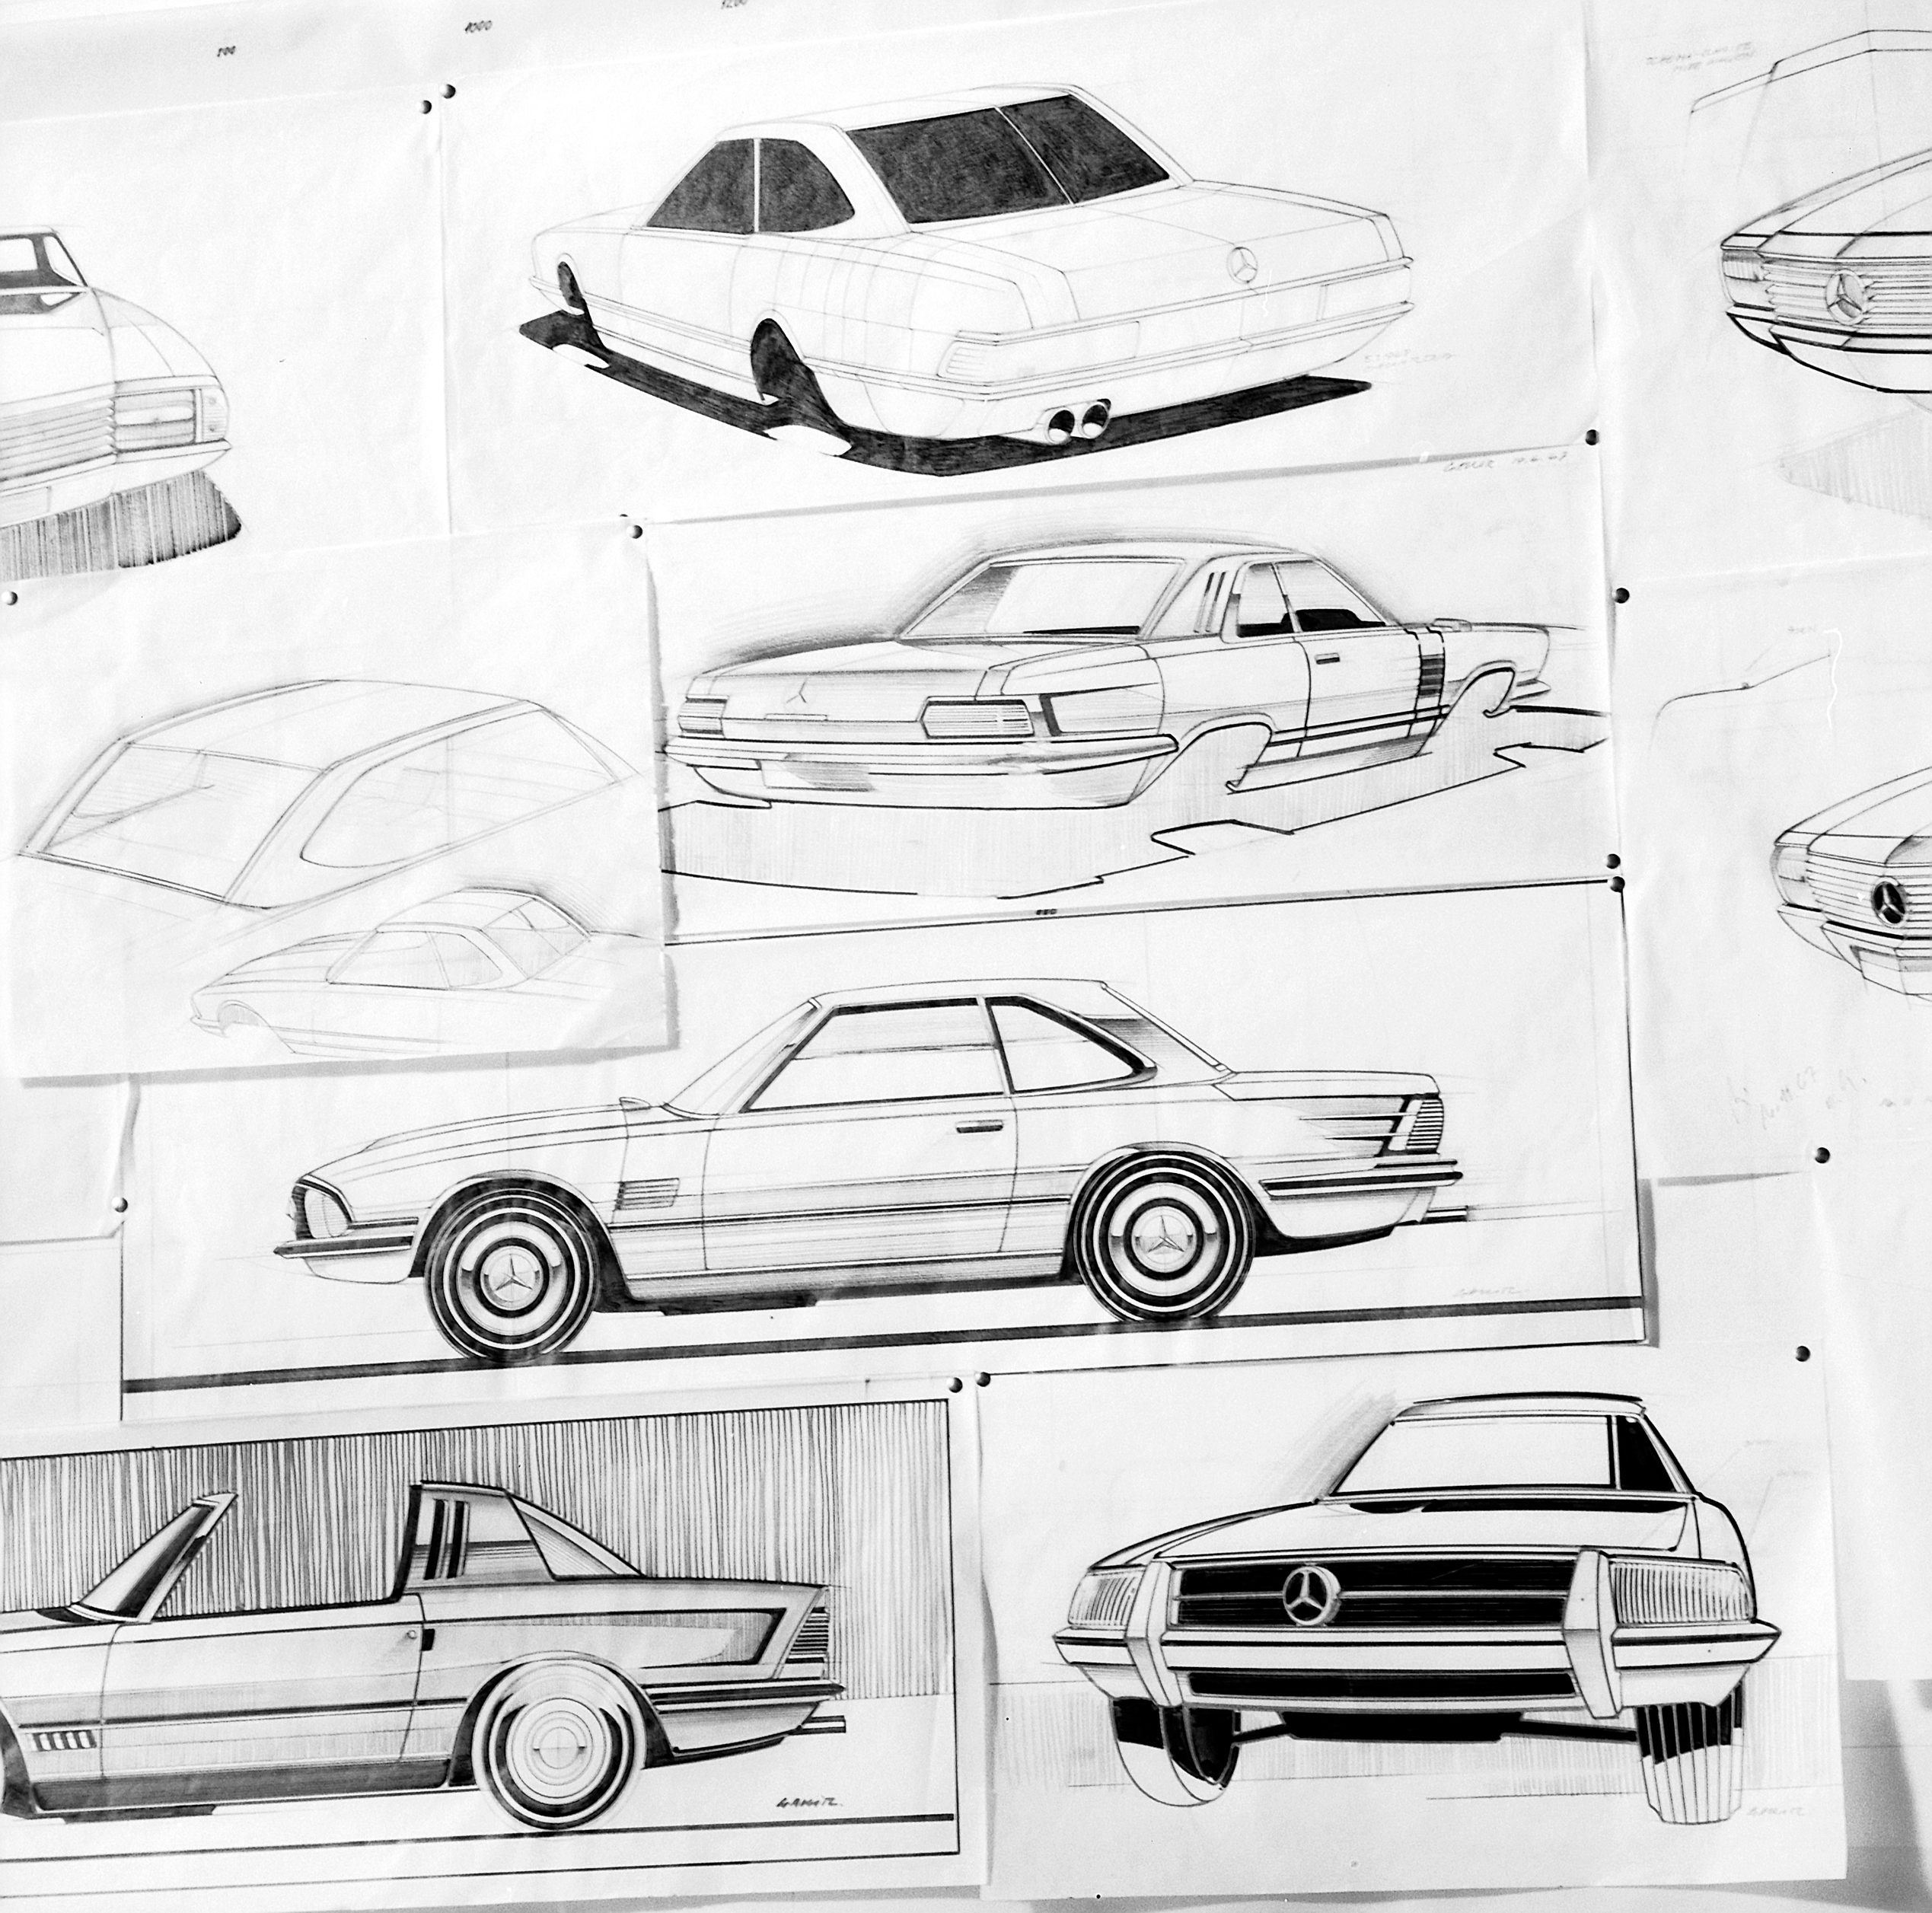 Conceptual sketches from the R107 design department that were not realised, but details of which echo actual styling features.